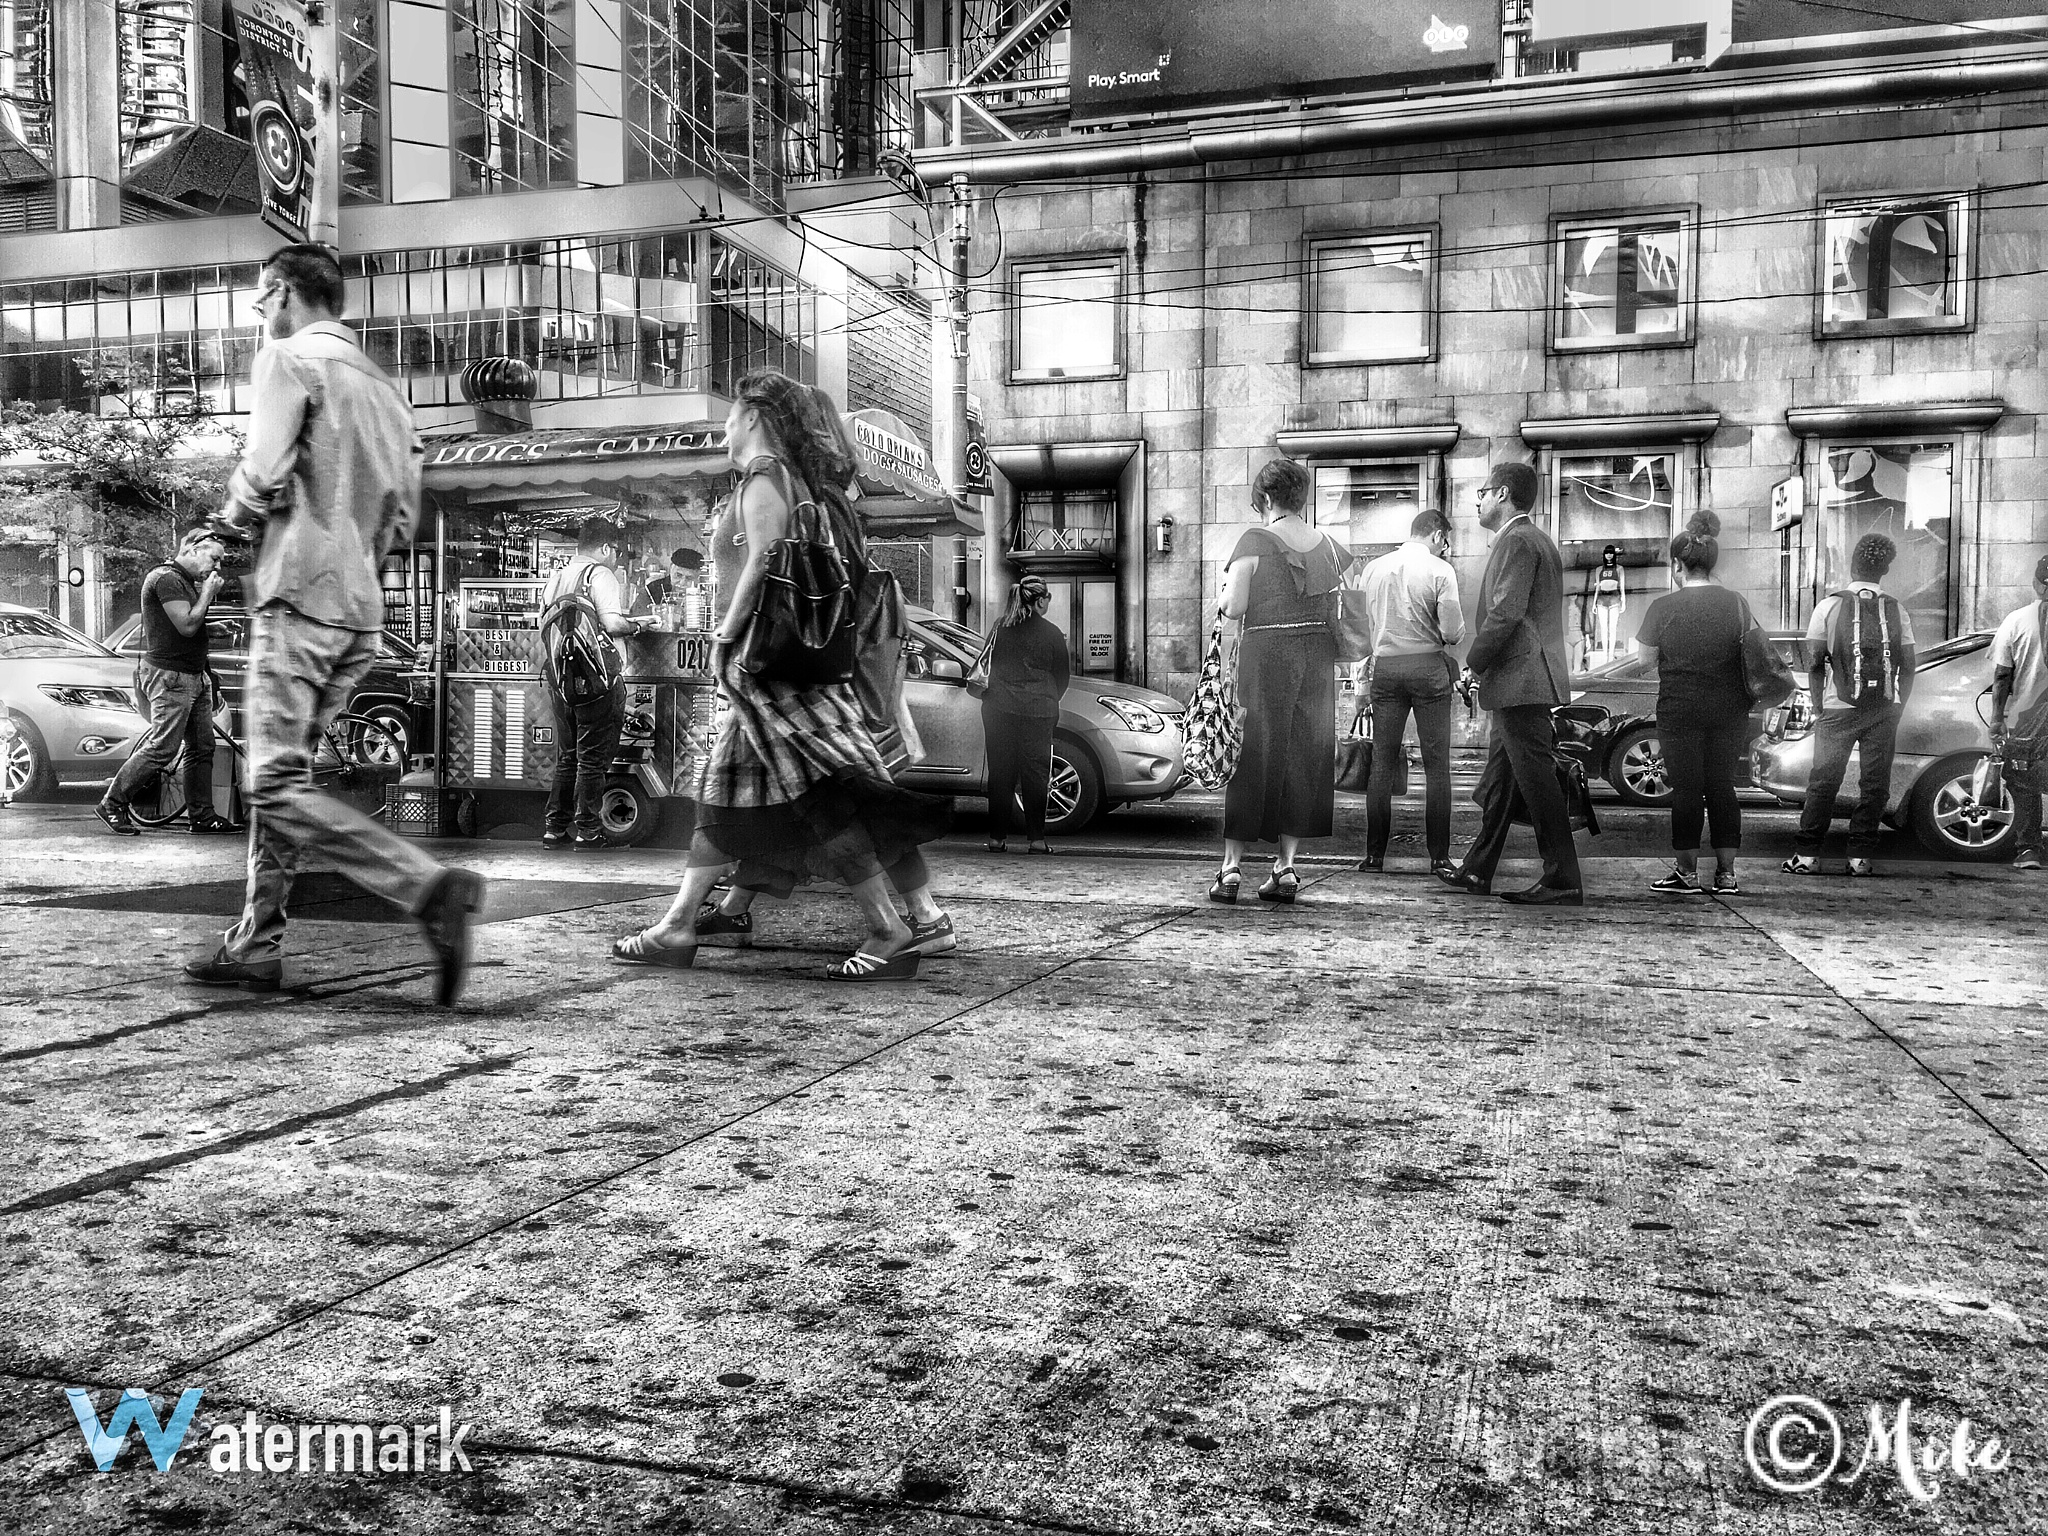 Yonge and Dundas by Burke's Photography